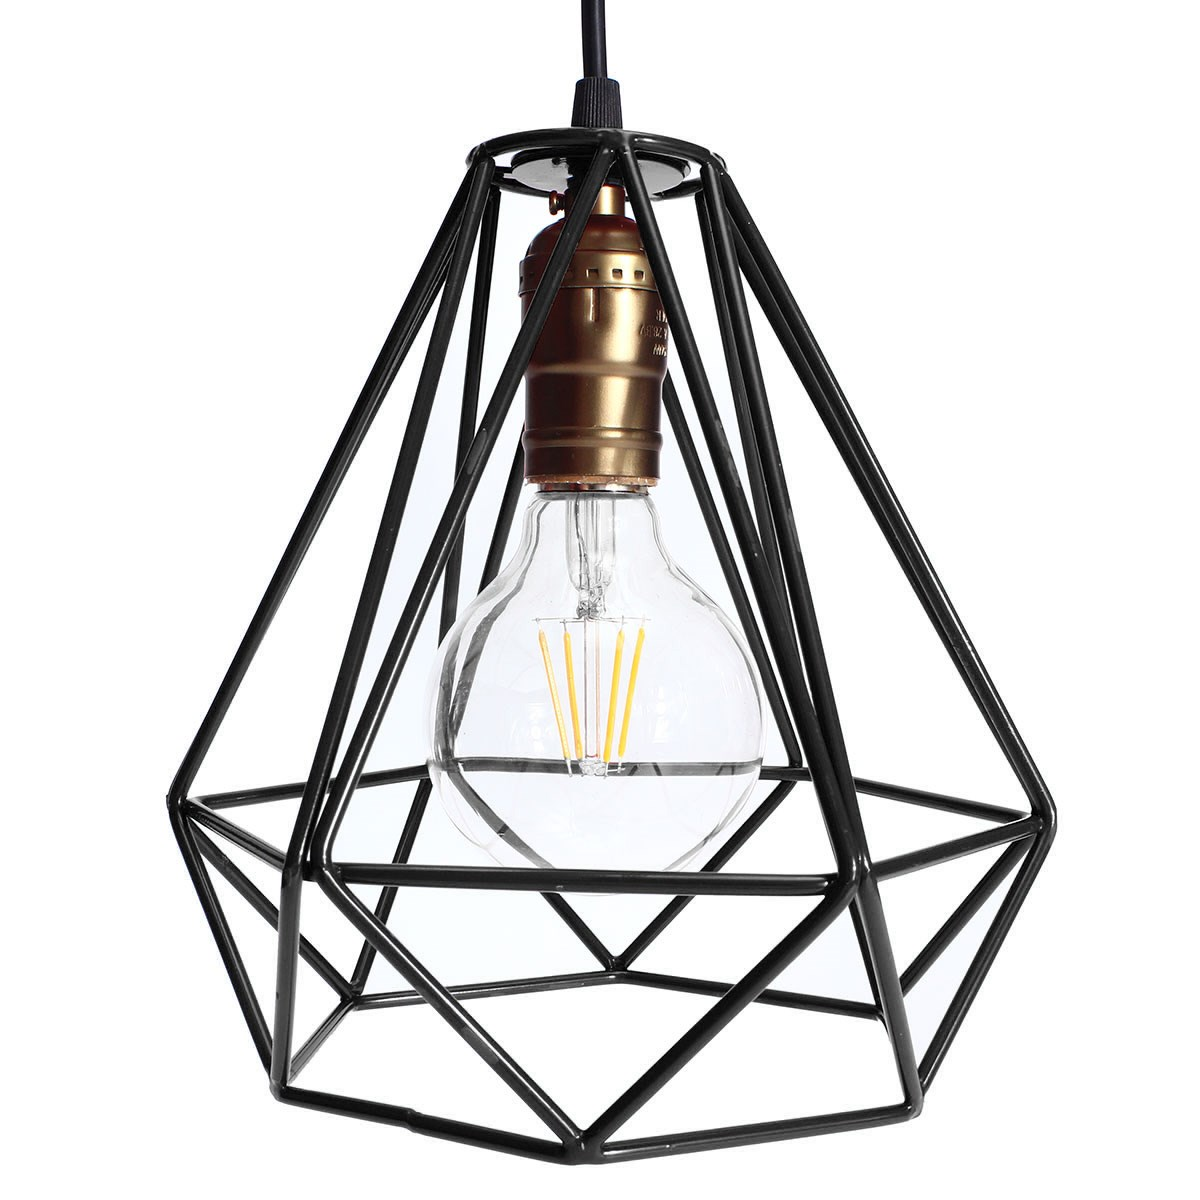 Lamp cover loft industrial edison metal wire frame ceiling pendant lamp cover loft industrial edison metal wire frame ceiling pendant hanging light lamp lampshade modern cage fixture in lamp covers shades from lights greentooth Gallery